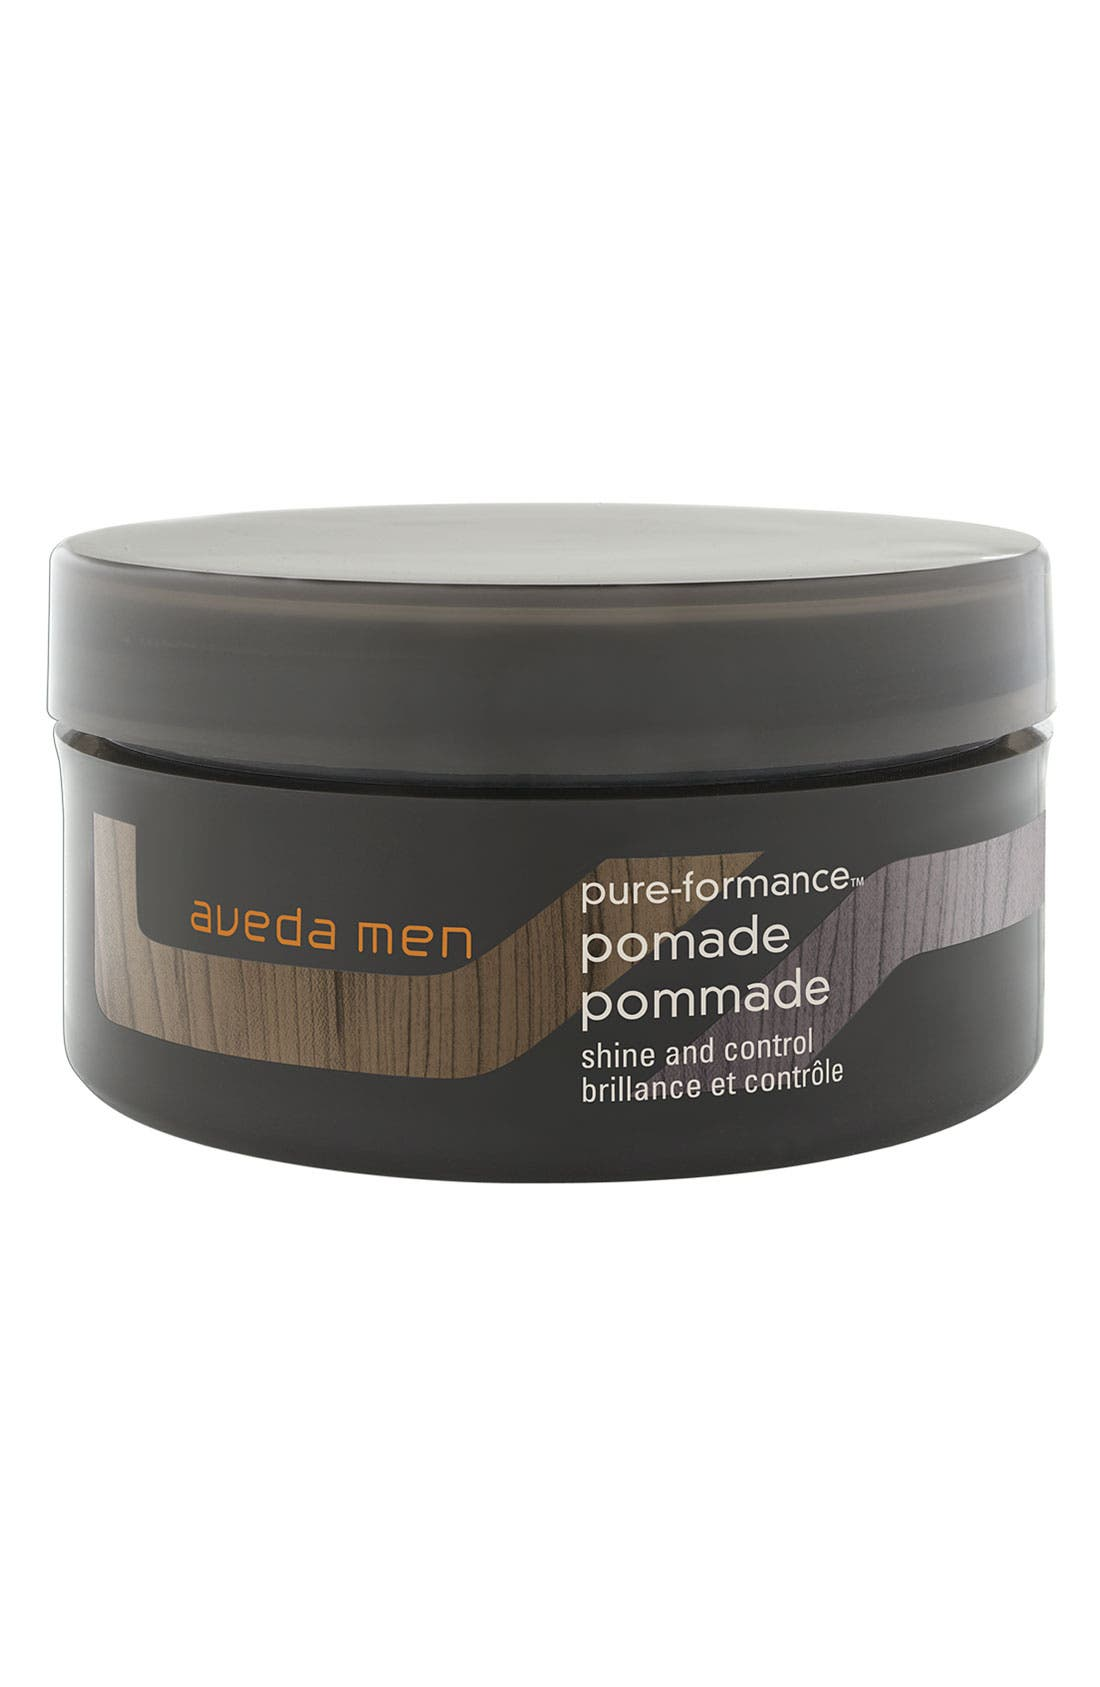 Aveda Men 'pure-formance™' Pomade